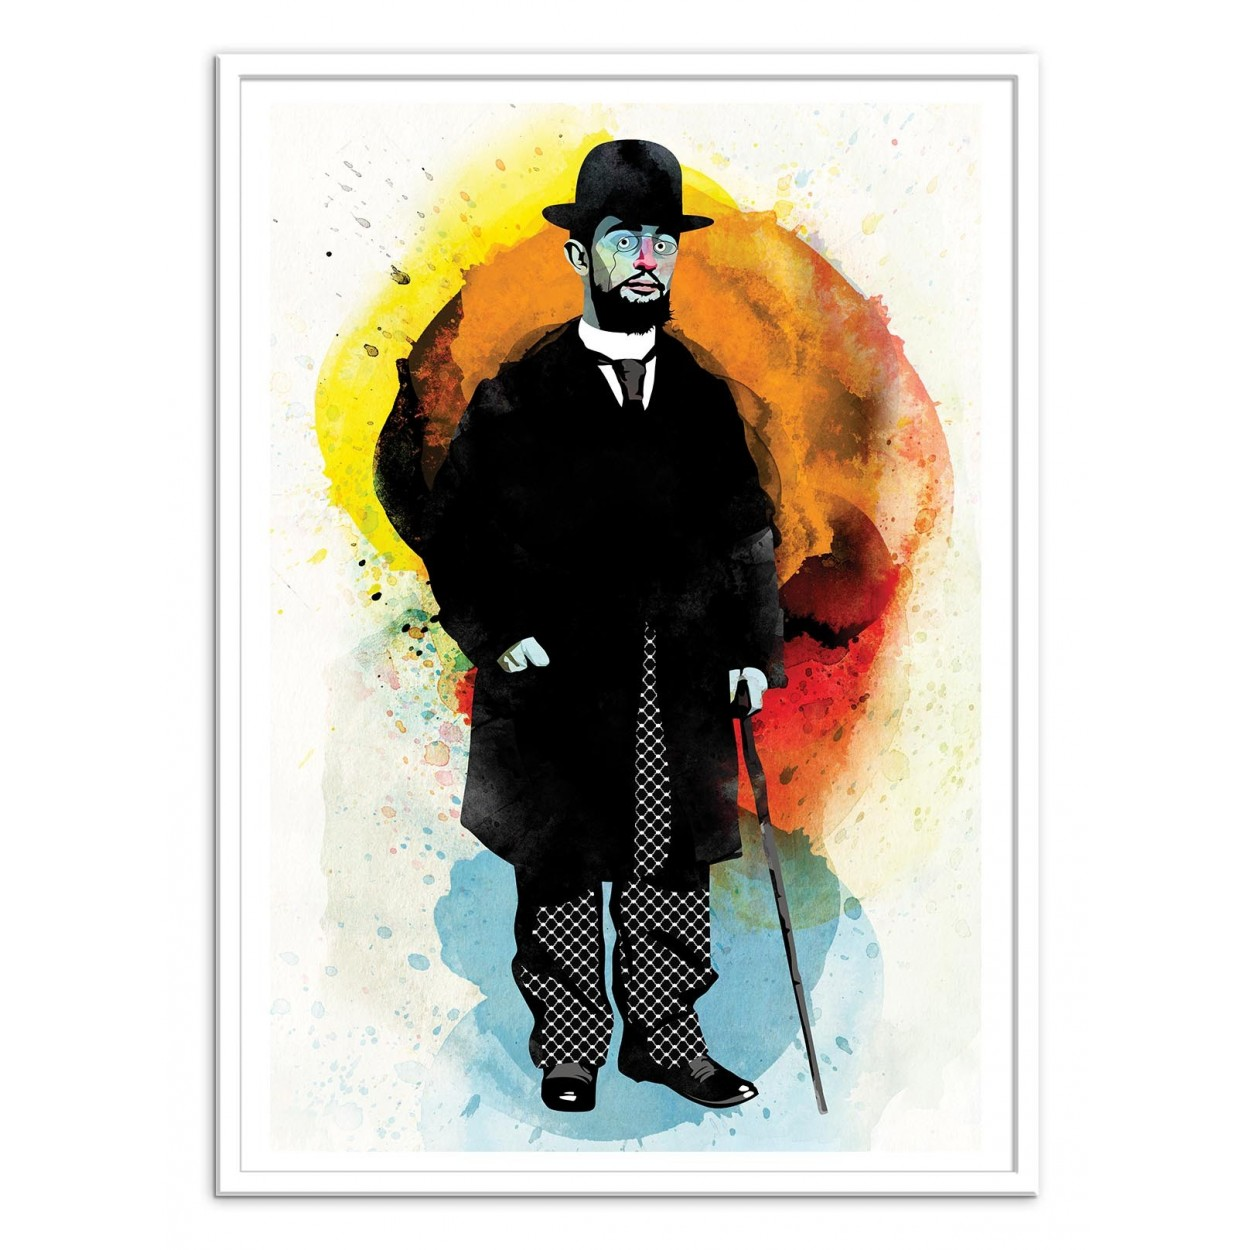 illustration art poster frame paint graphic portrait toulouse lautrec. Black Bedroom Furniture Sets. Home Design Ideas